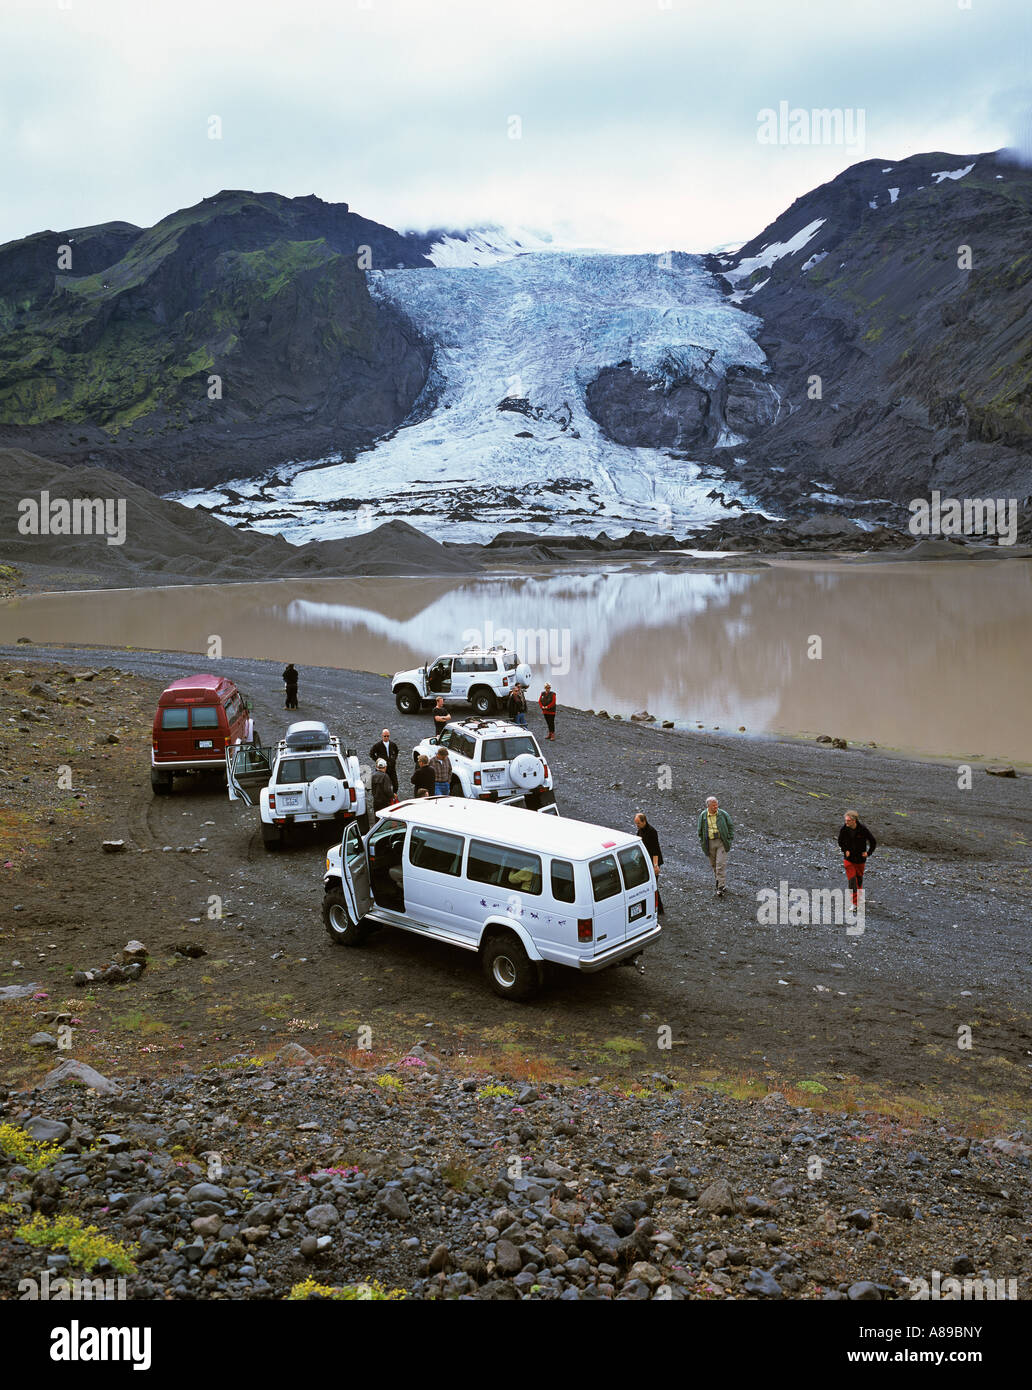 Four wheel drive cars and a glacier lake behind the Gigjoekull glacier, Thorsmoerk, Iceland - Stock Image